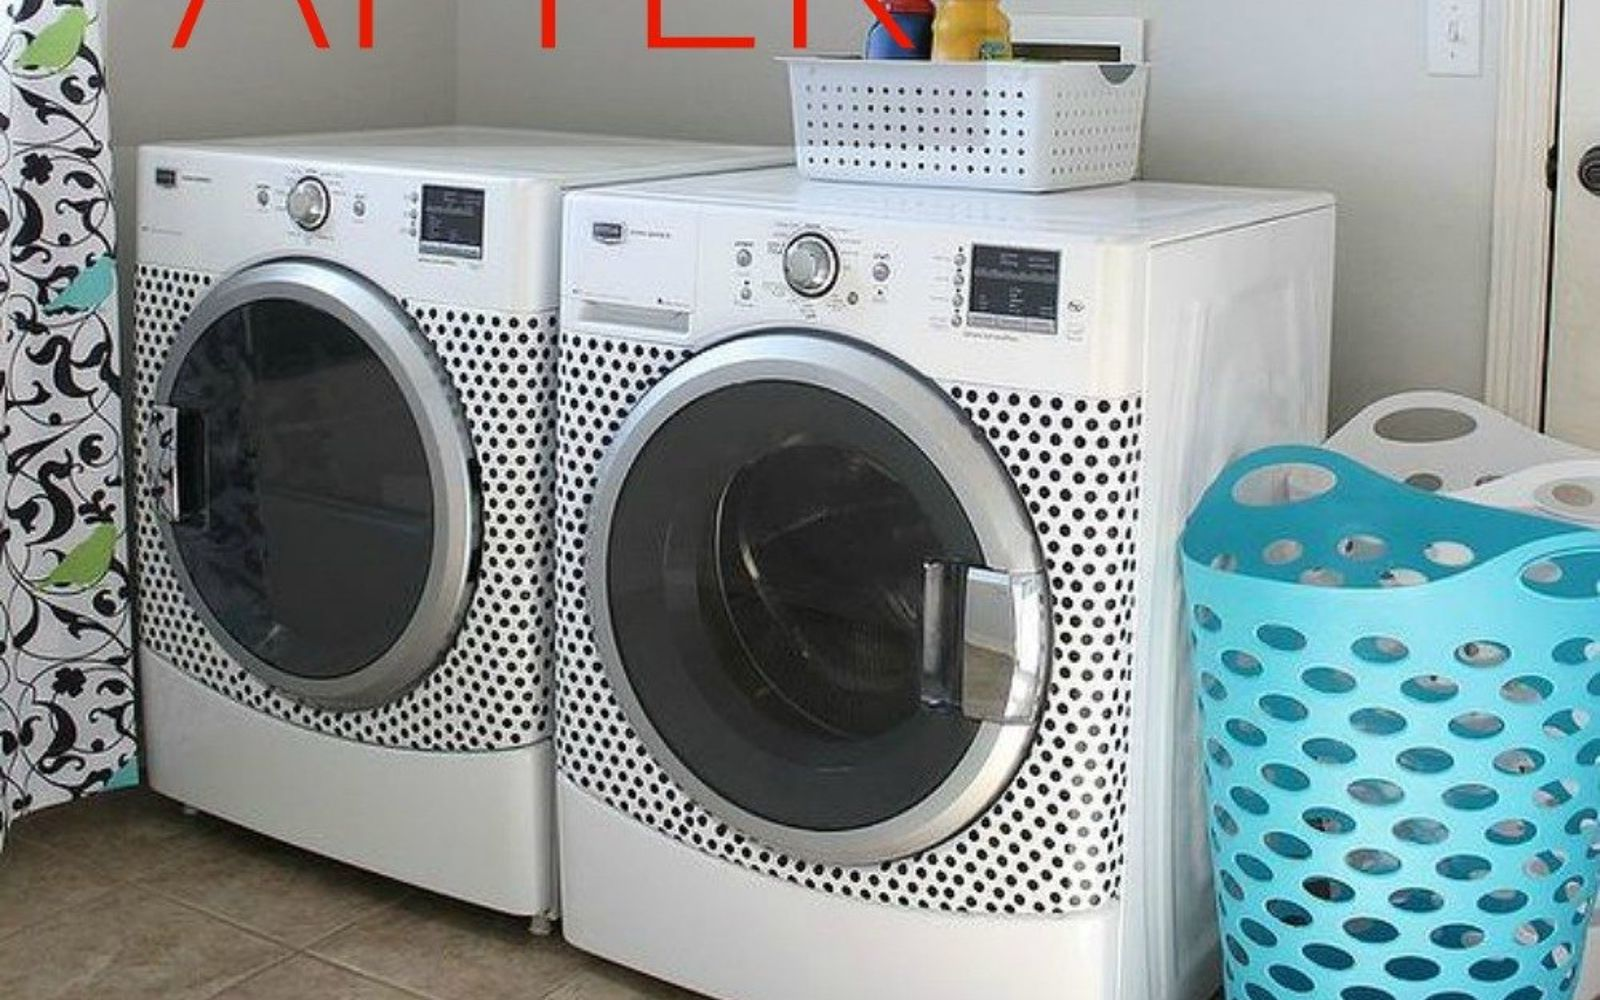 s don t buy new appliances these 9 diy hacks are brilliant, appliances, After A polka dotted matching set